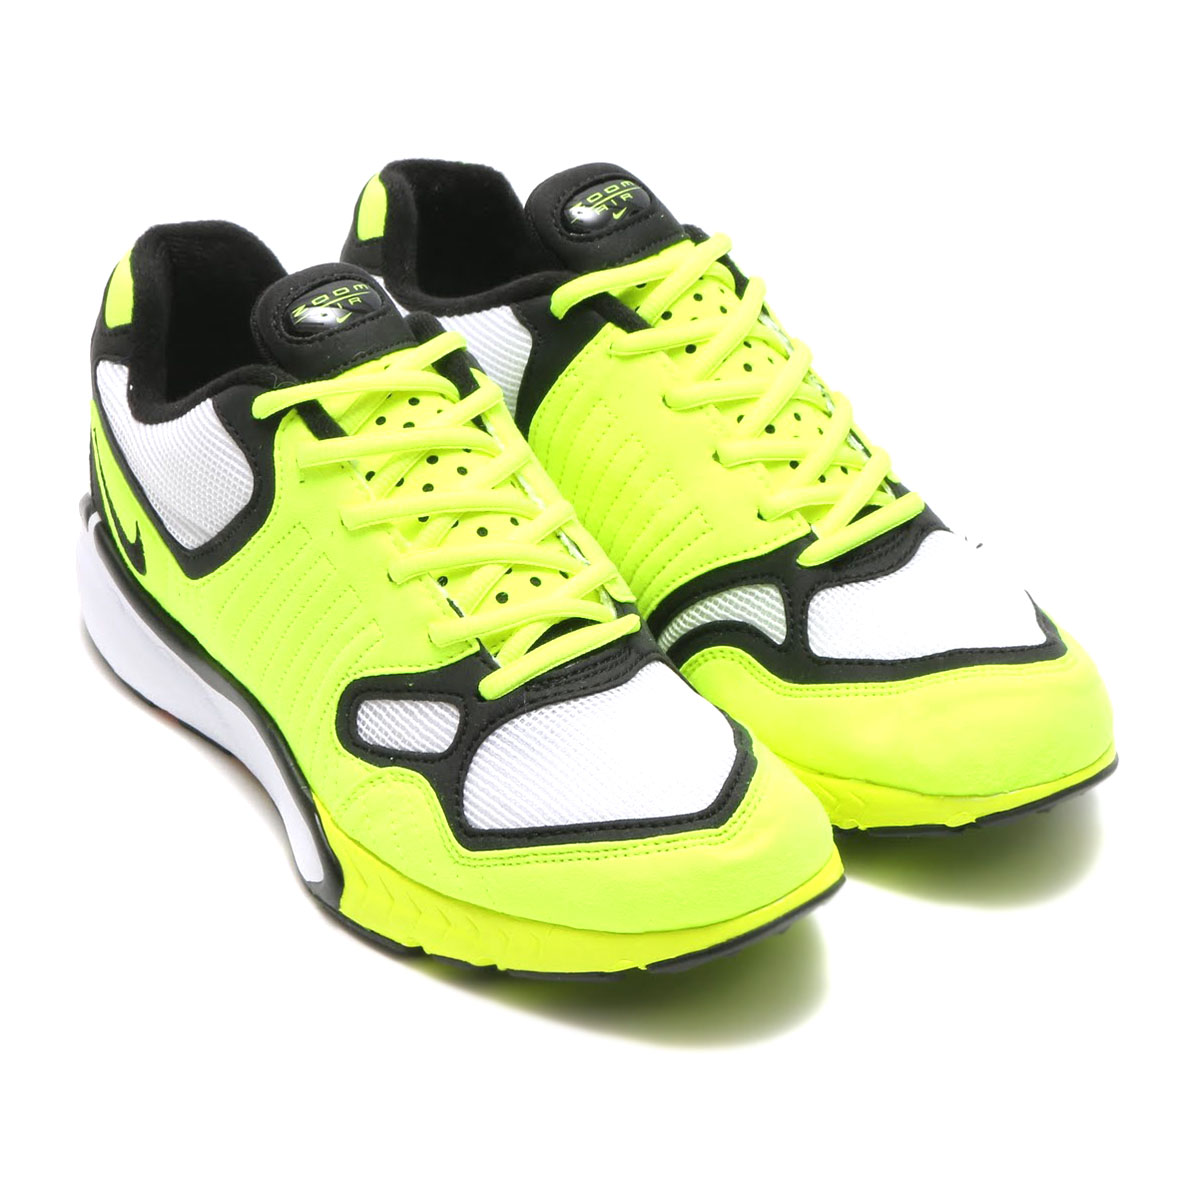 bc629d1dcc7bb2 The SP men shoes adopt an epoch-making design of 1997 of ティンカー Hatfield in Nike  air zoom talaria  16